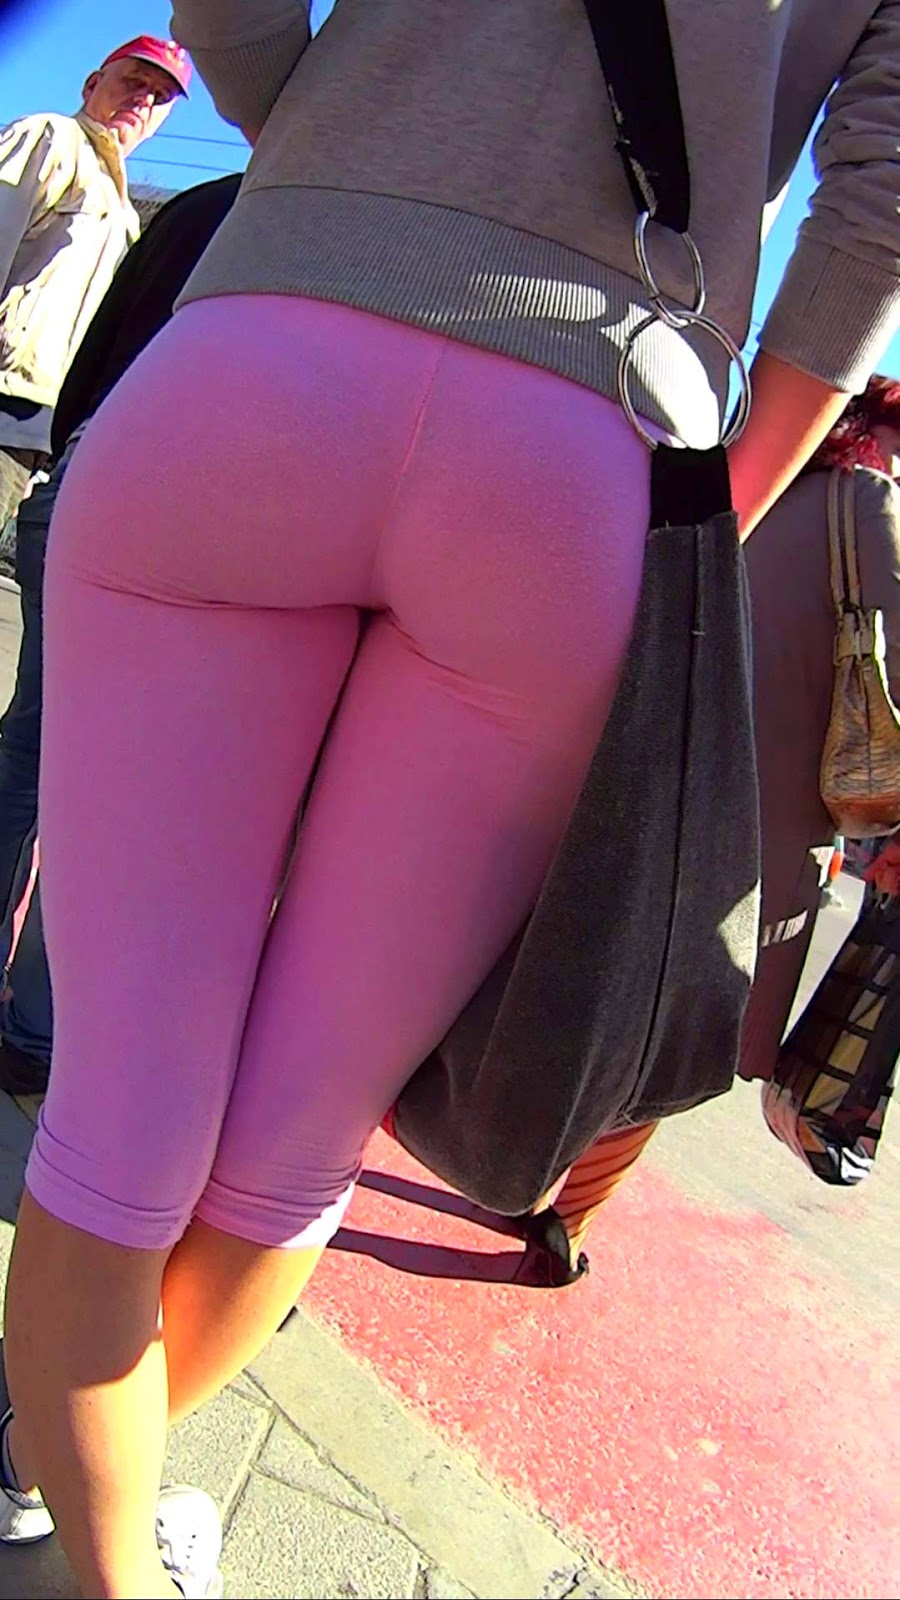 Sexy Naked Girls In Yoga Pants